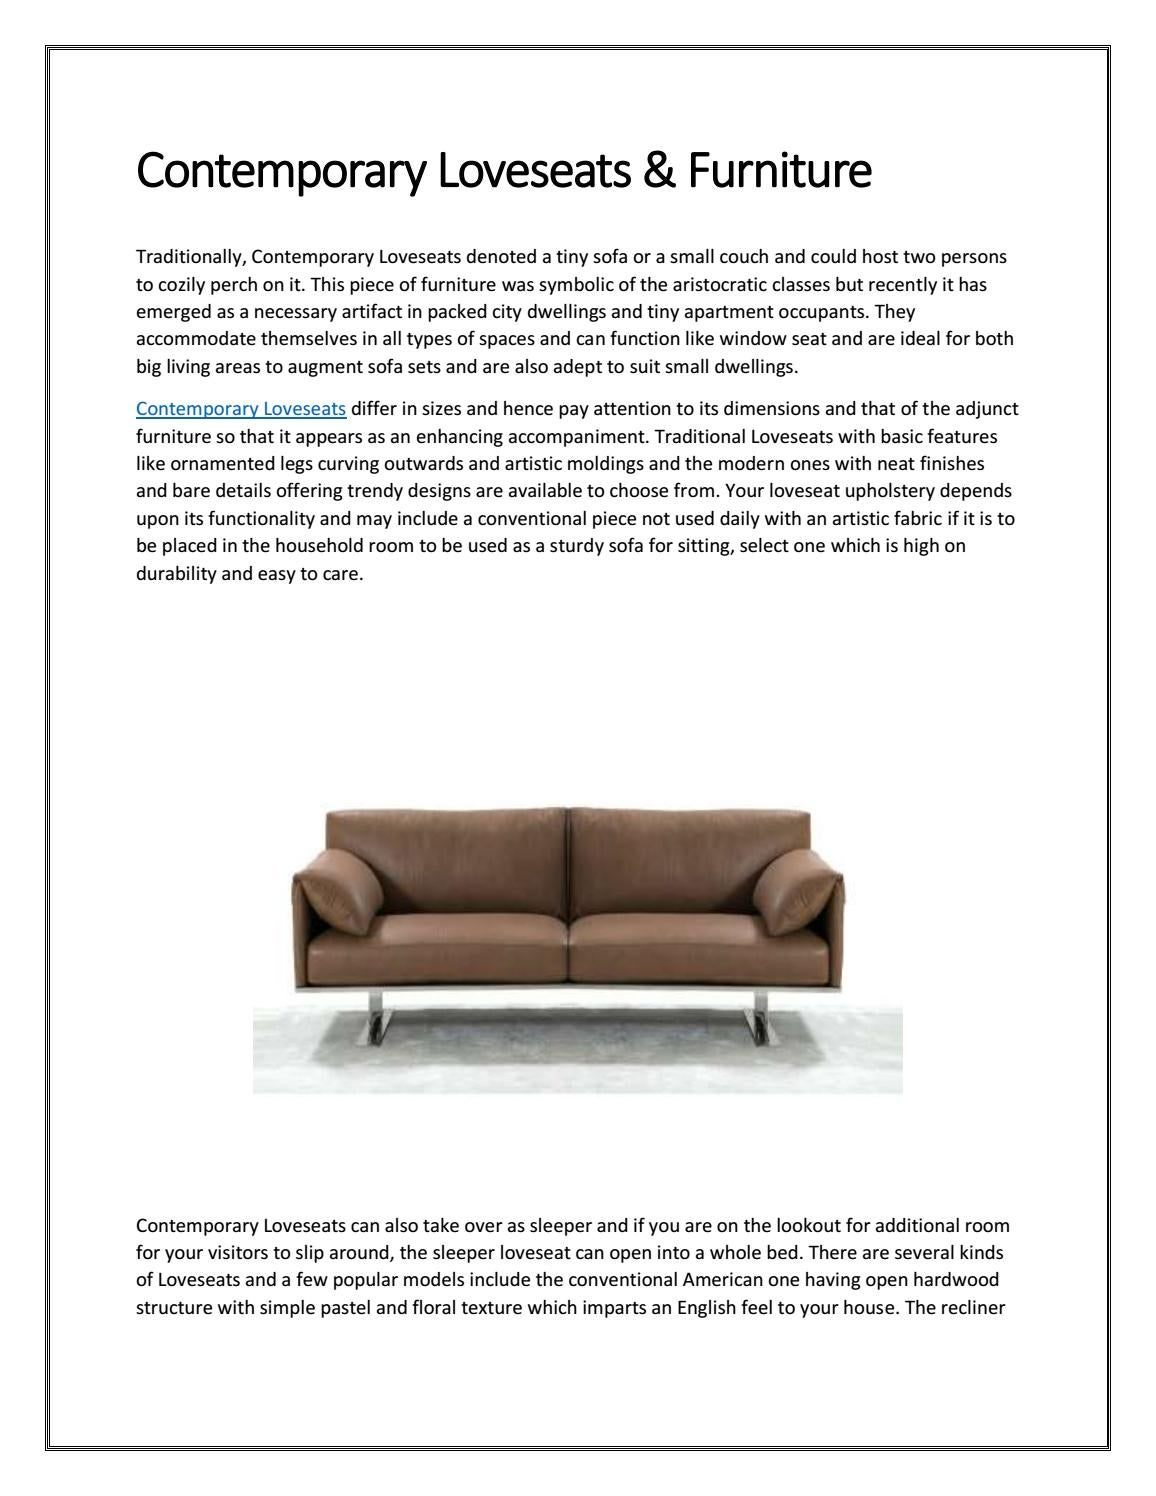 Contemporary Loveseats Furniture By Modtempo Issuu